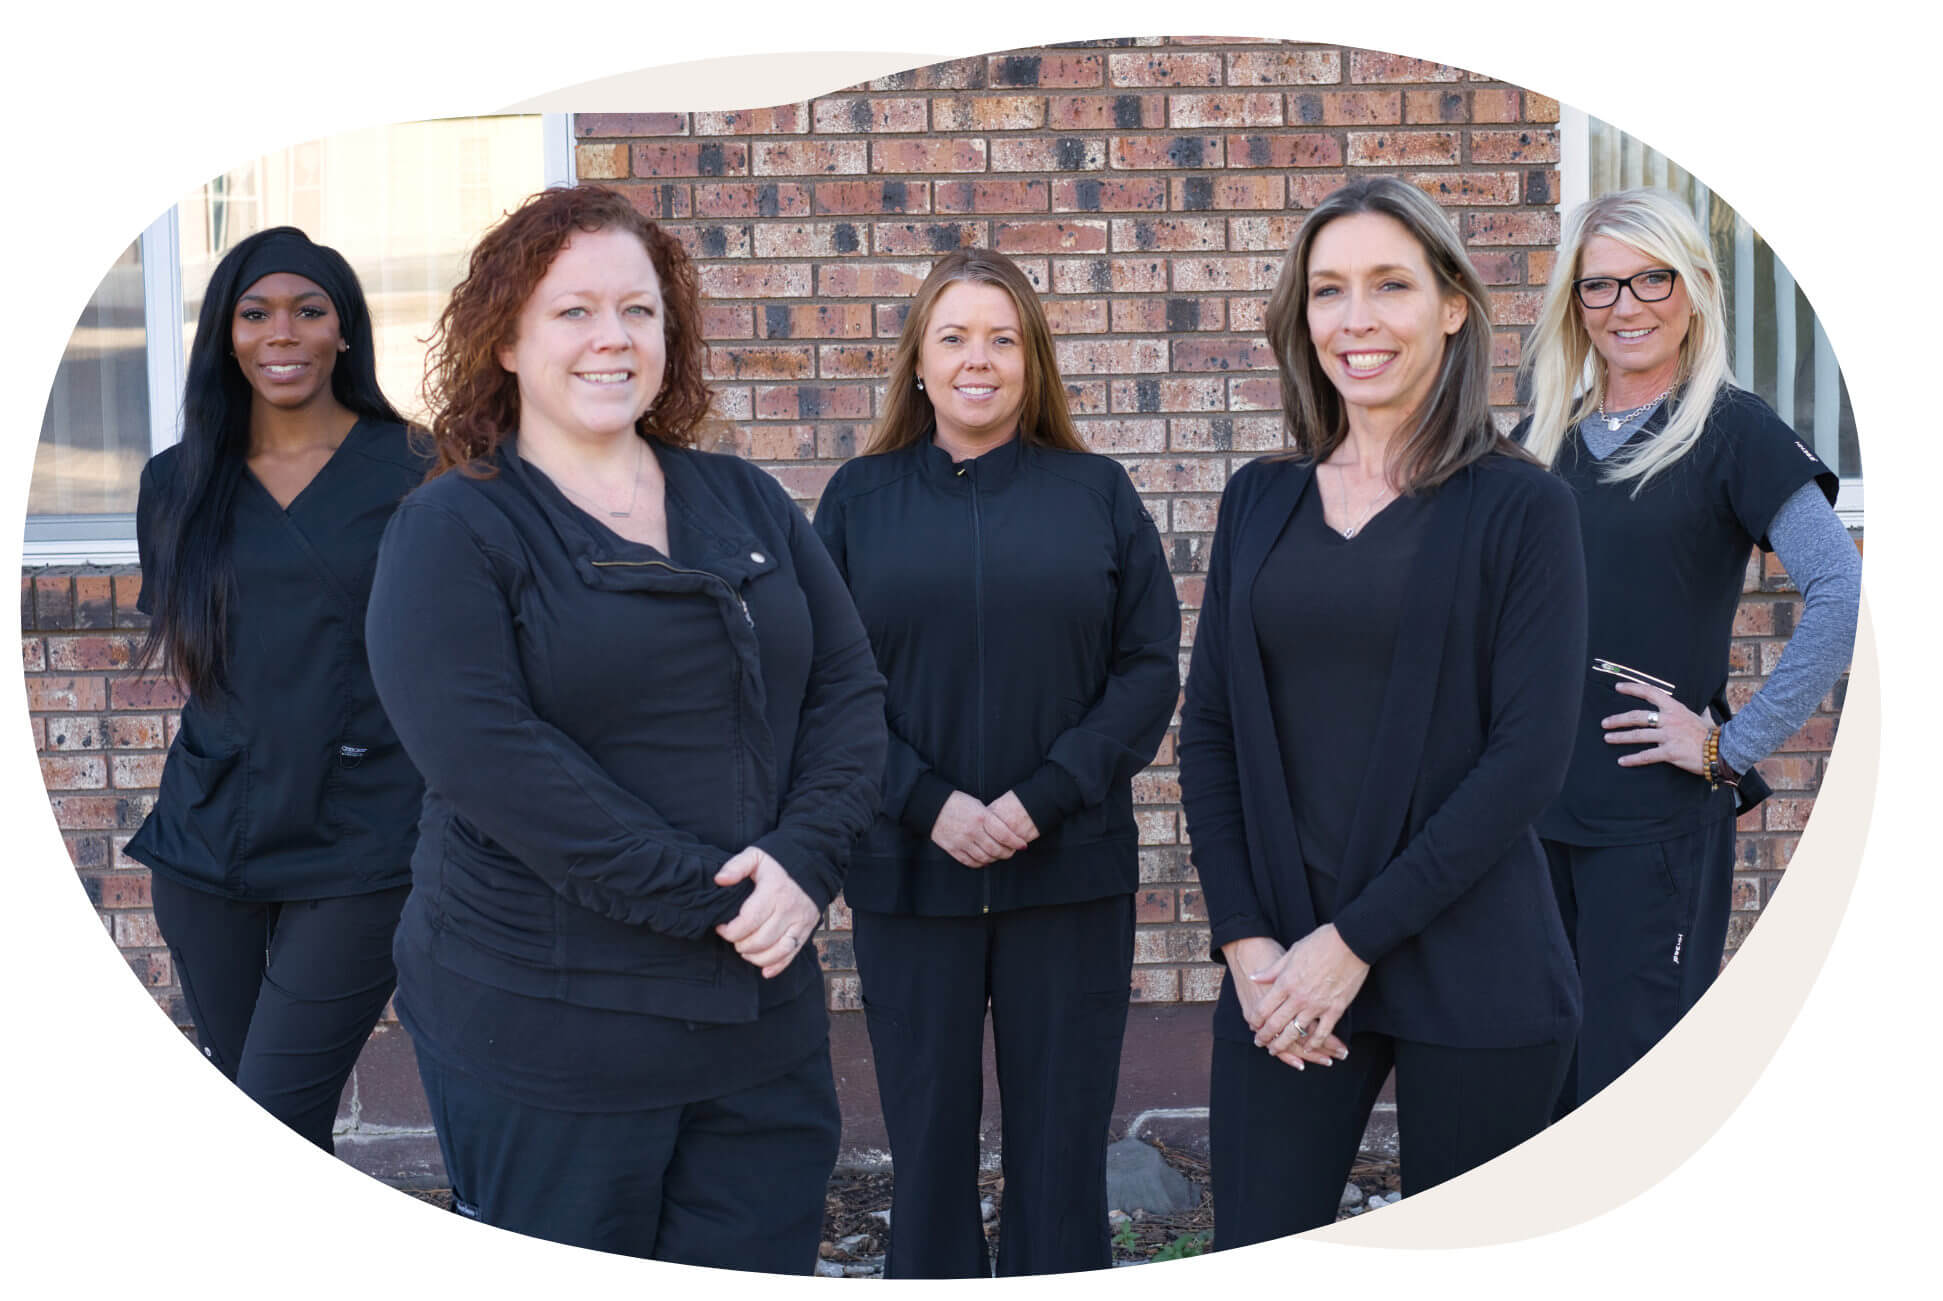 The team at Town & Country Dentistry welcoming patients in front of the office.